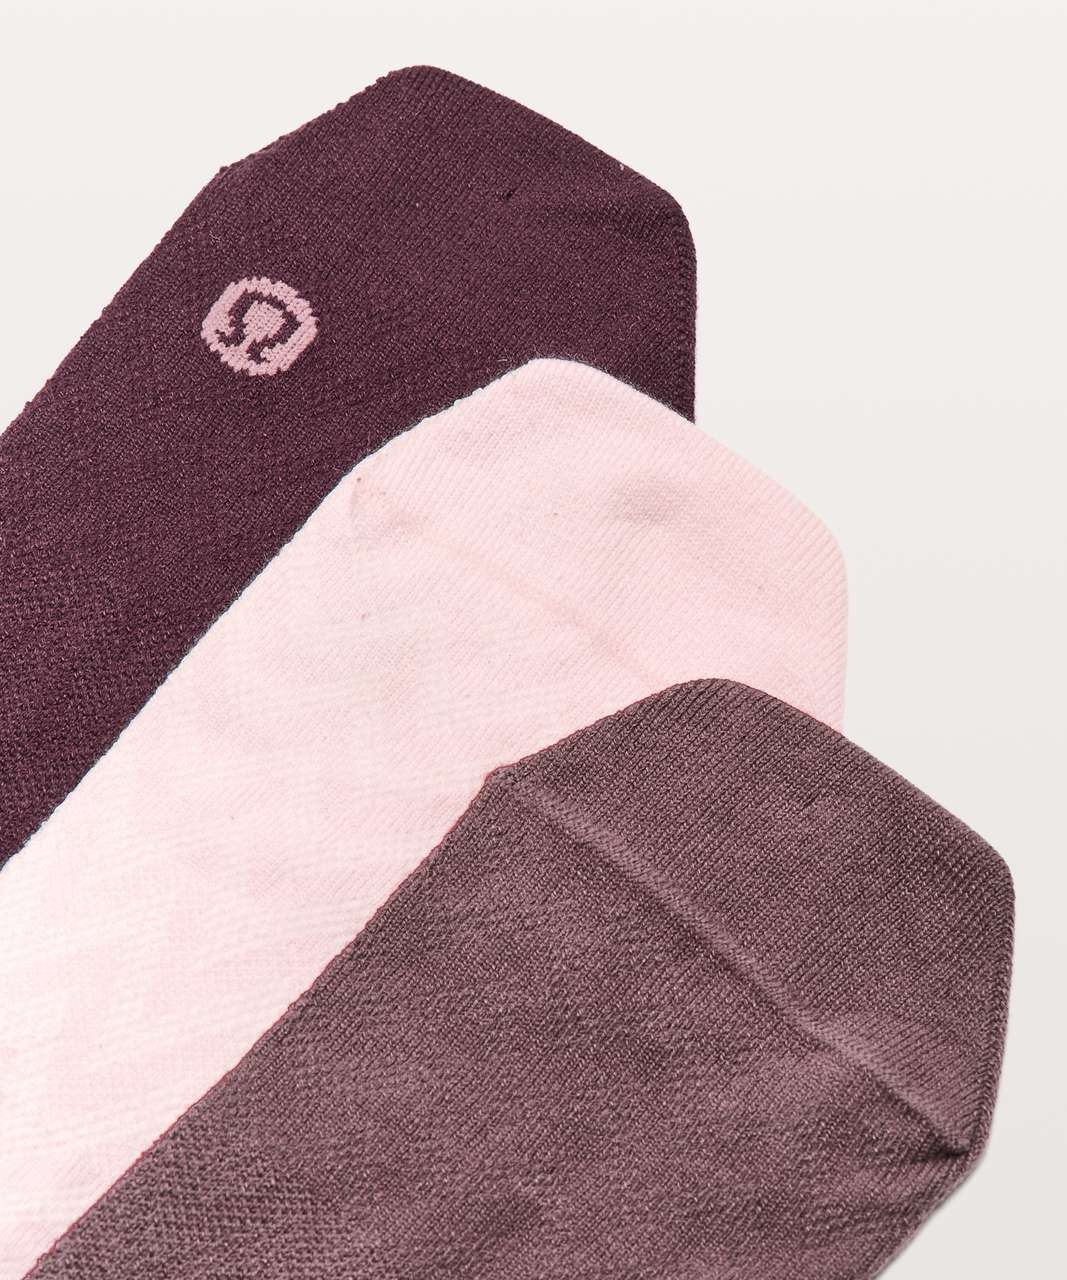 Lululemon On The Fly Sock *3-Pack - Blissful Pink / Antique Bark / Dark Adobe